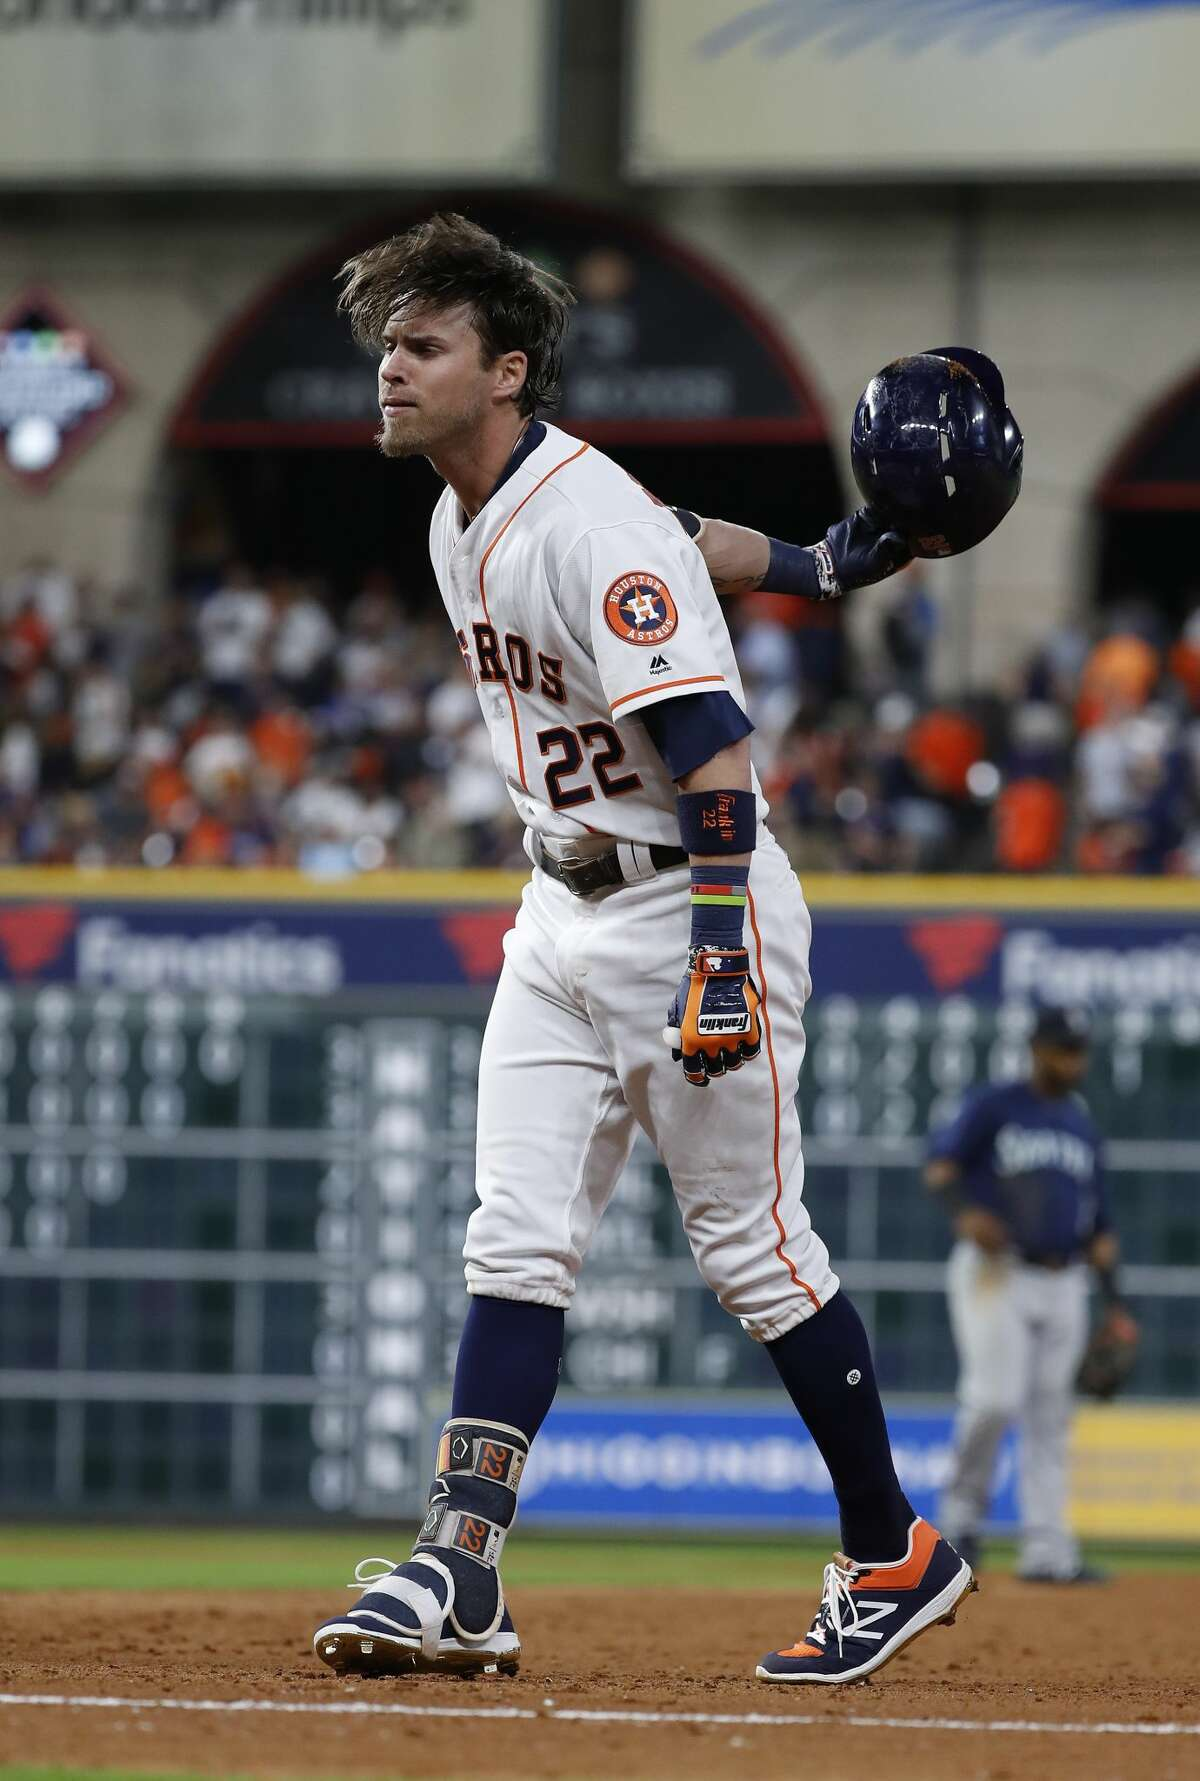 Houston Astros Josh Reddick (22) throws his batting helmet as he popped out to end the game during an MLB game at Minute Maid Park, Saturday, August 11, 2018, in Houston.